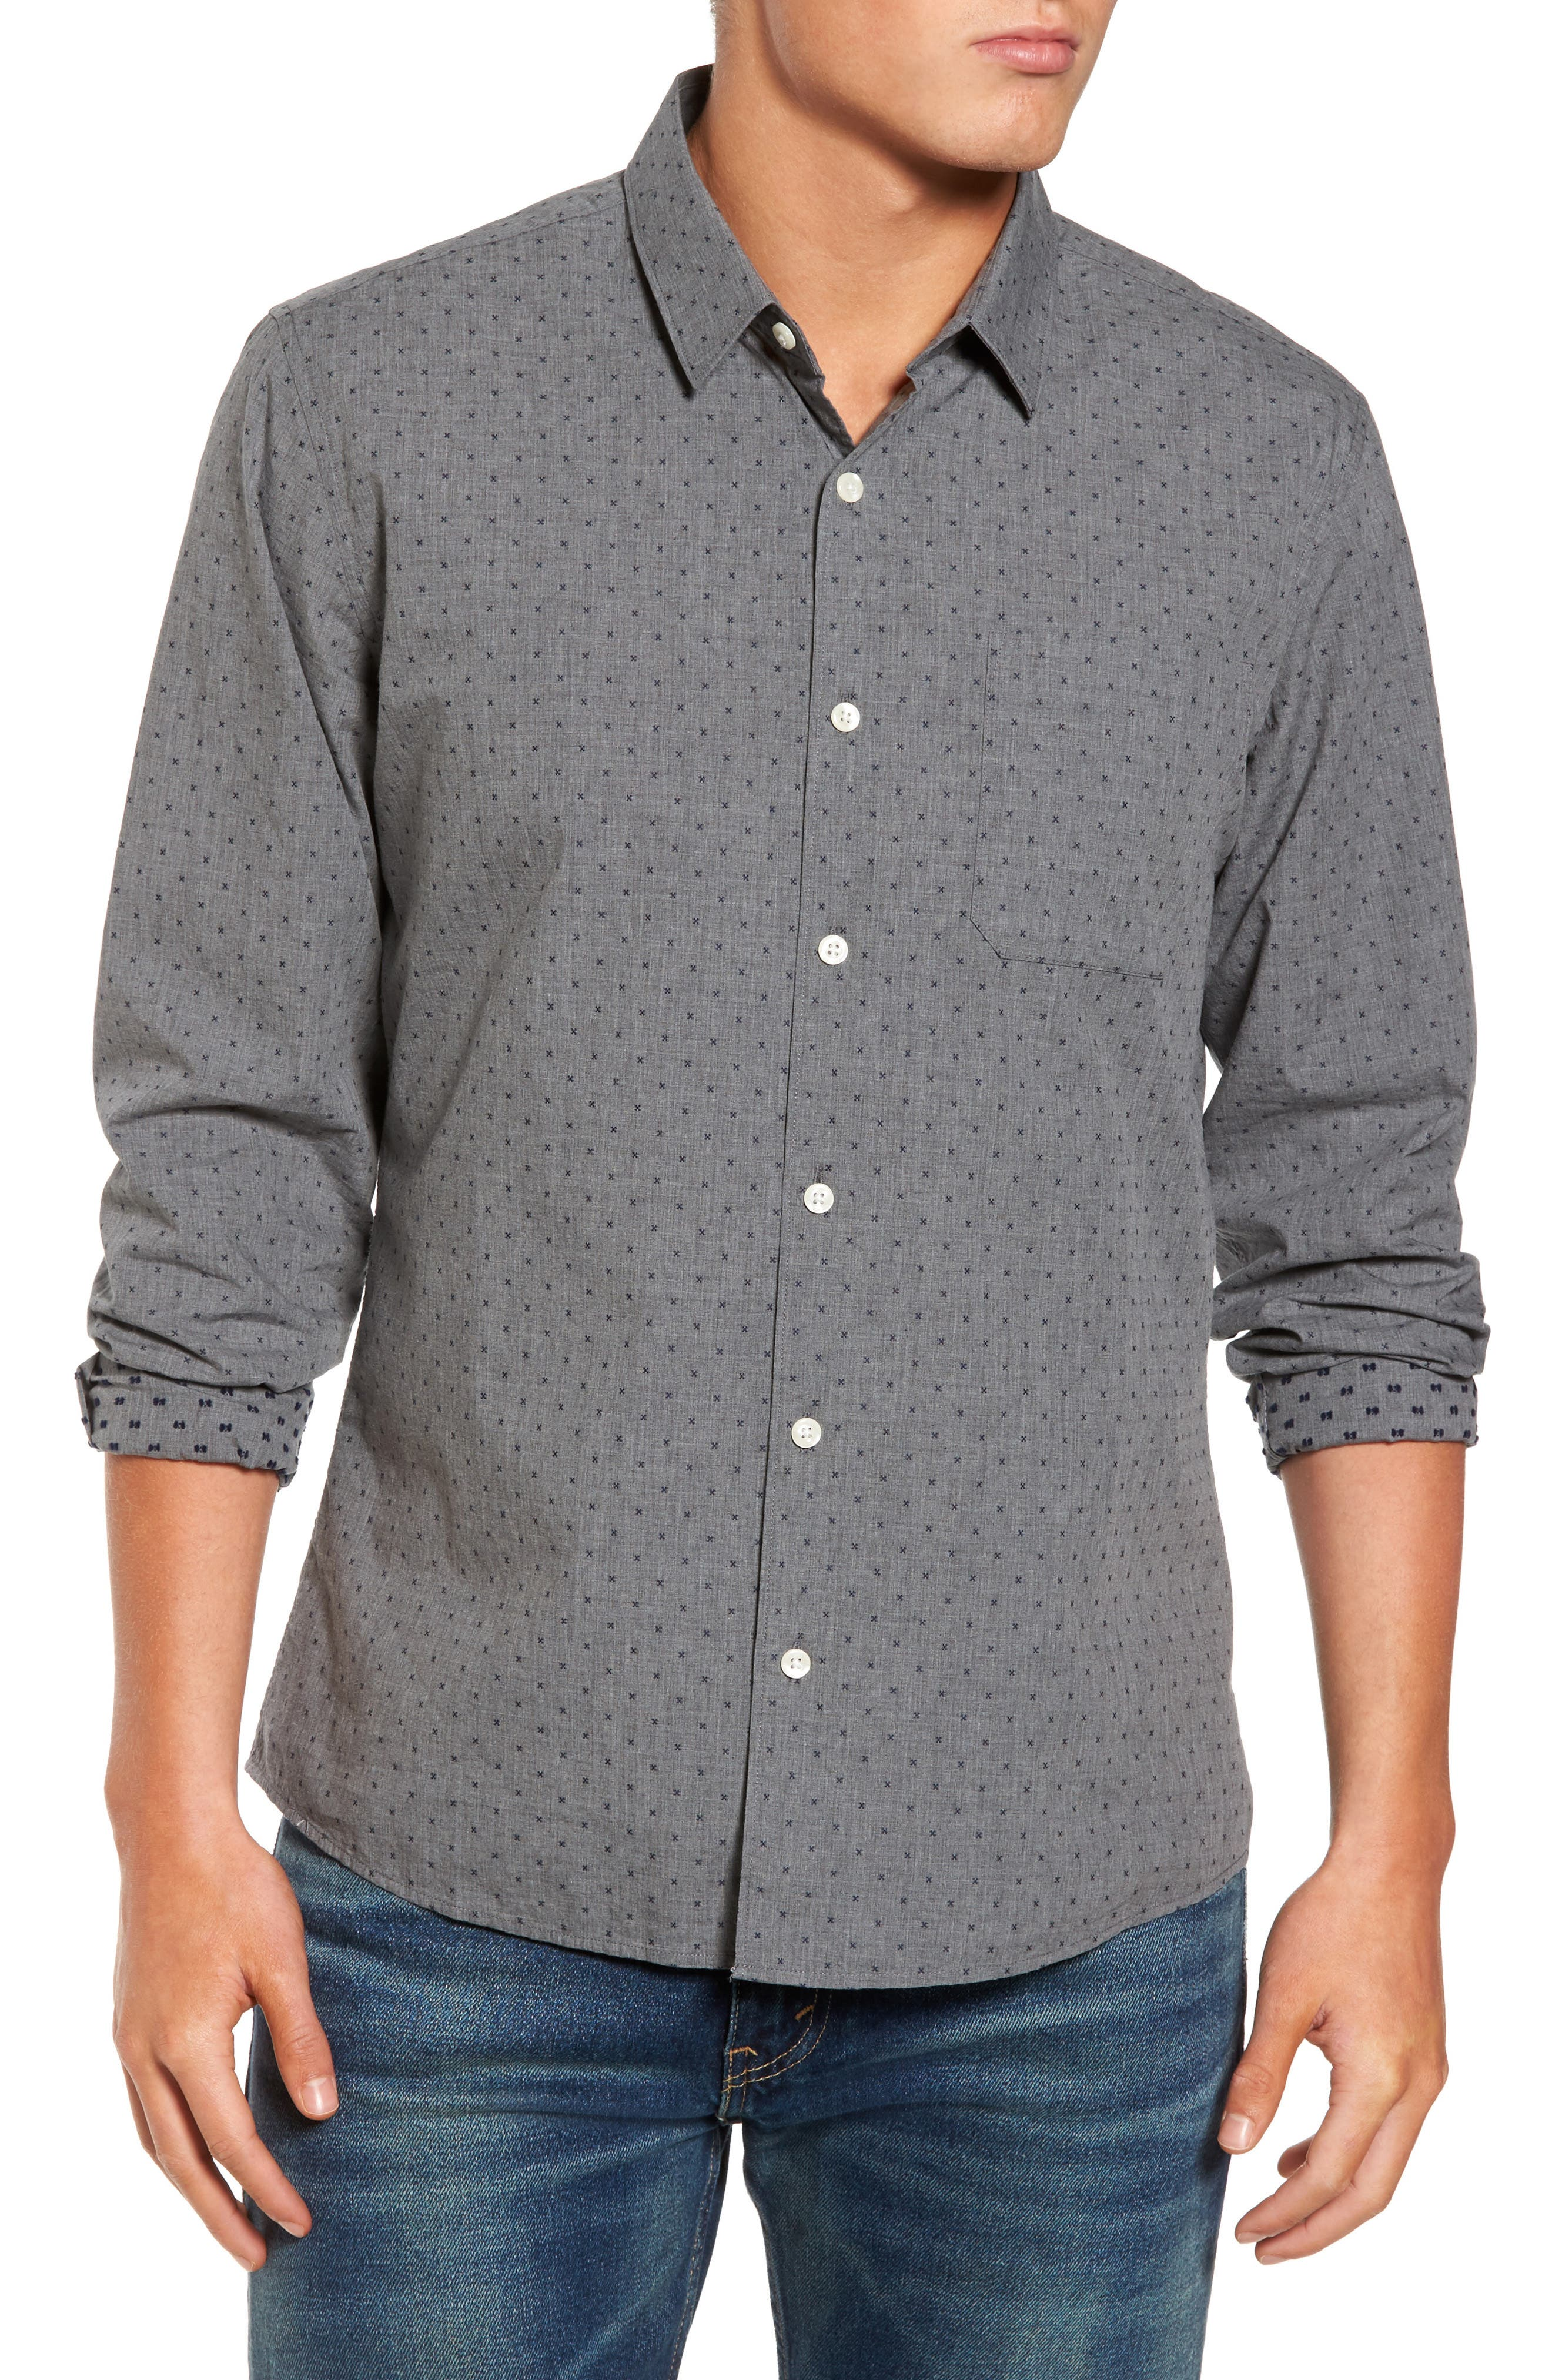 Steel Sky Woven Shirt,                             Main thumbnail 1, color,                             410